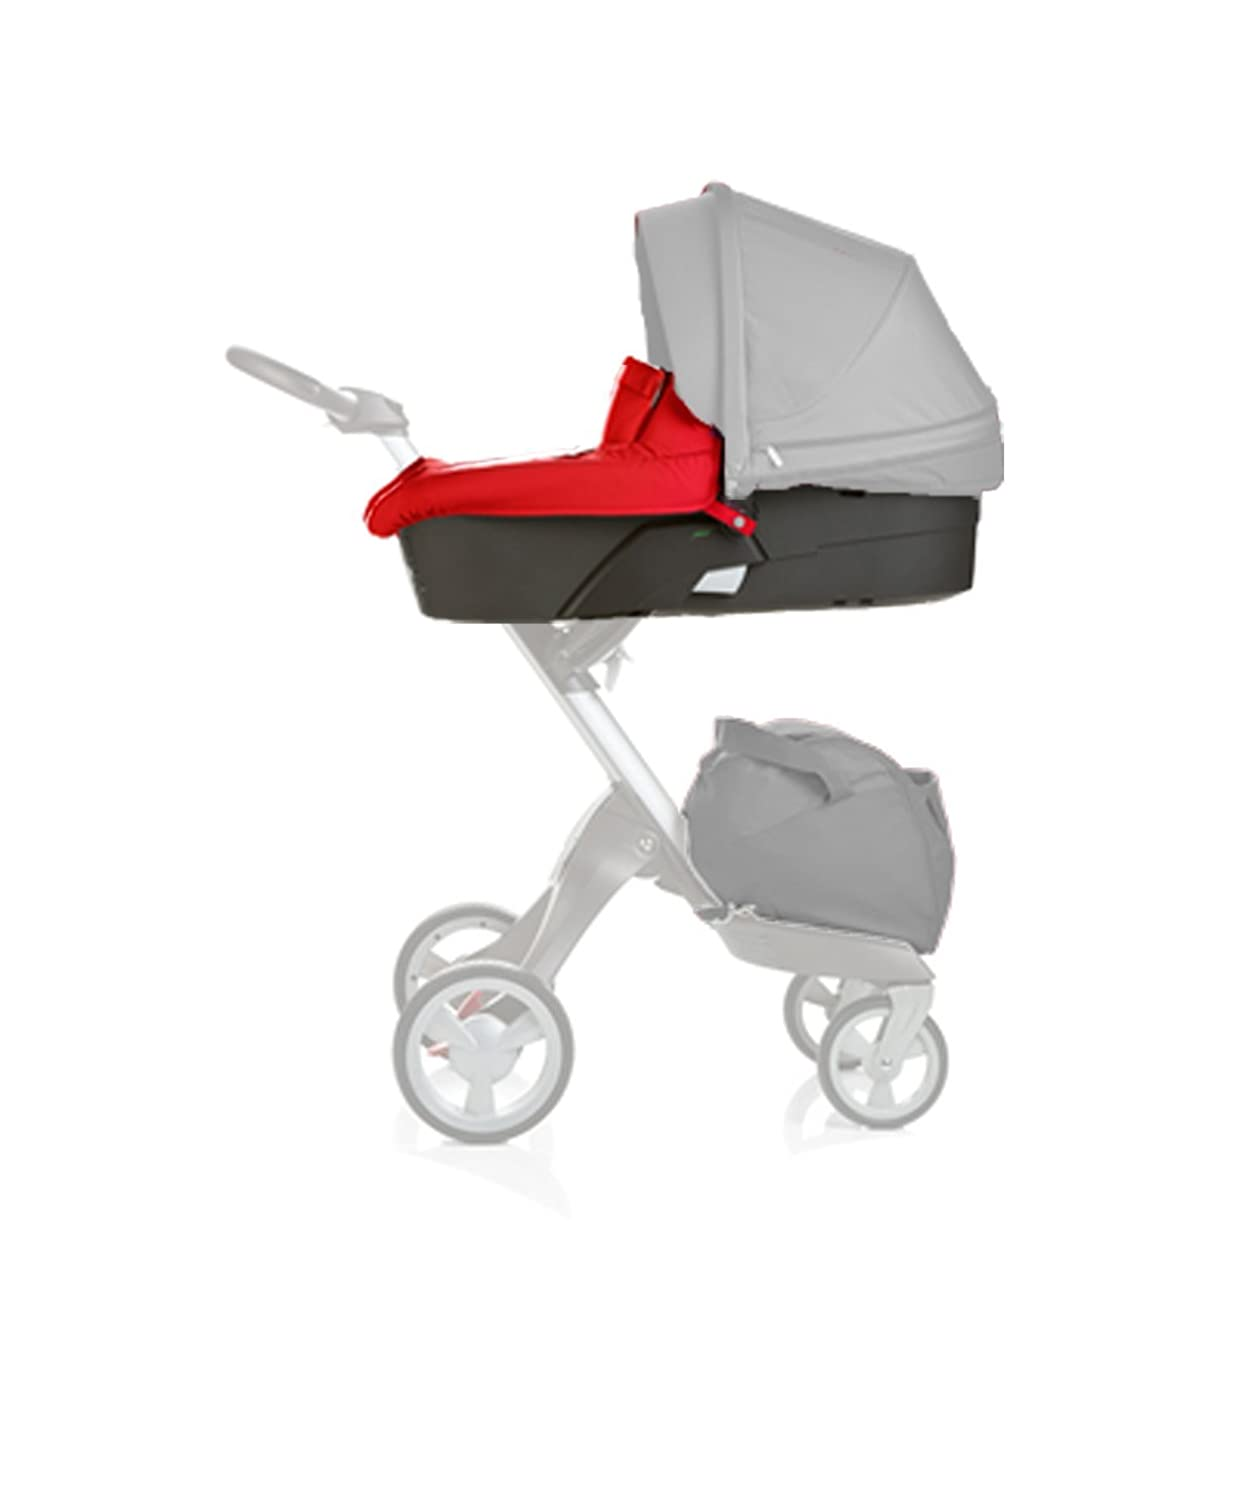 Stokke Xplory Carry Cot - Red 175503